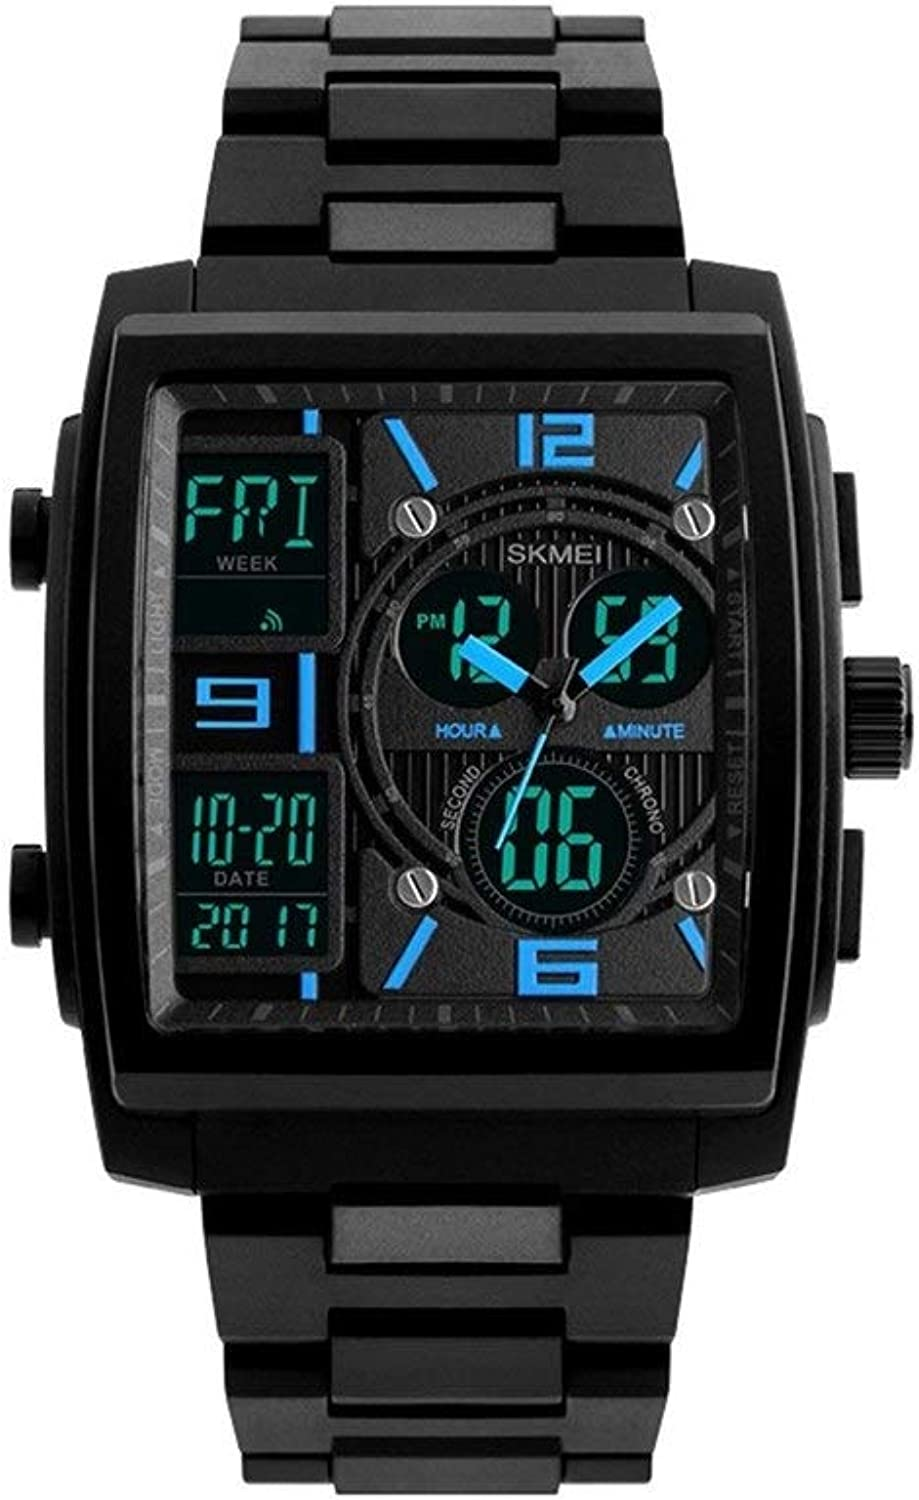 Haoyushangmao Fashion Men's Electronic Watch, Multi-Function Outdoor Sports Watch, Student Sports Electronic Watch, Best Gift for a Comfortable Touch